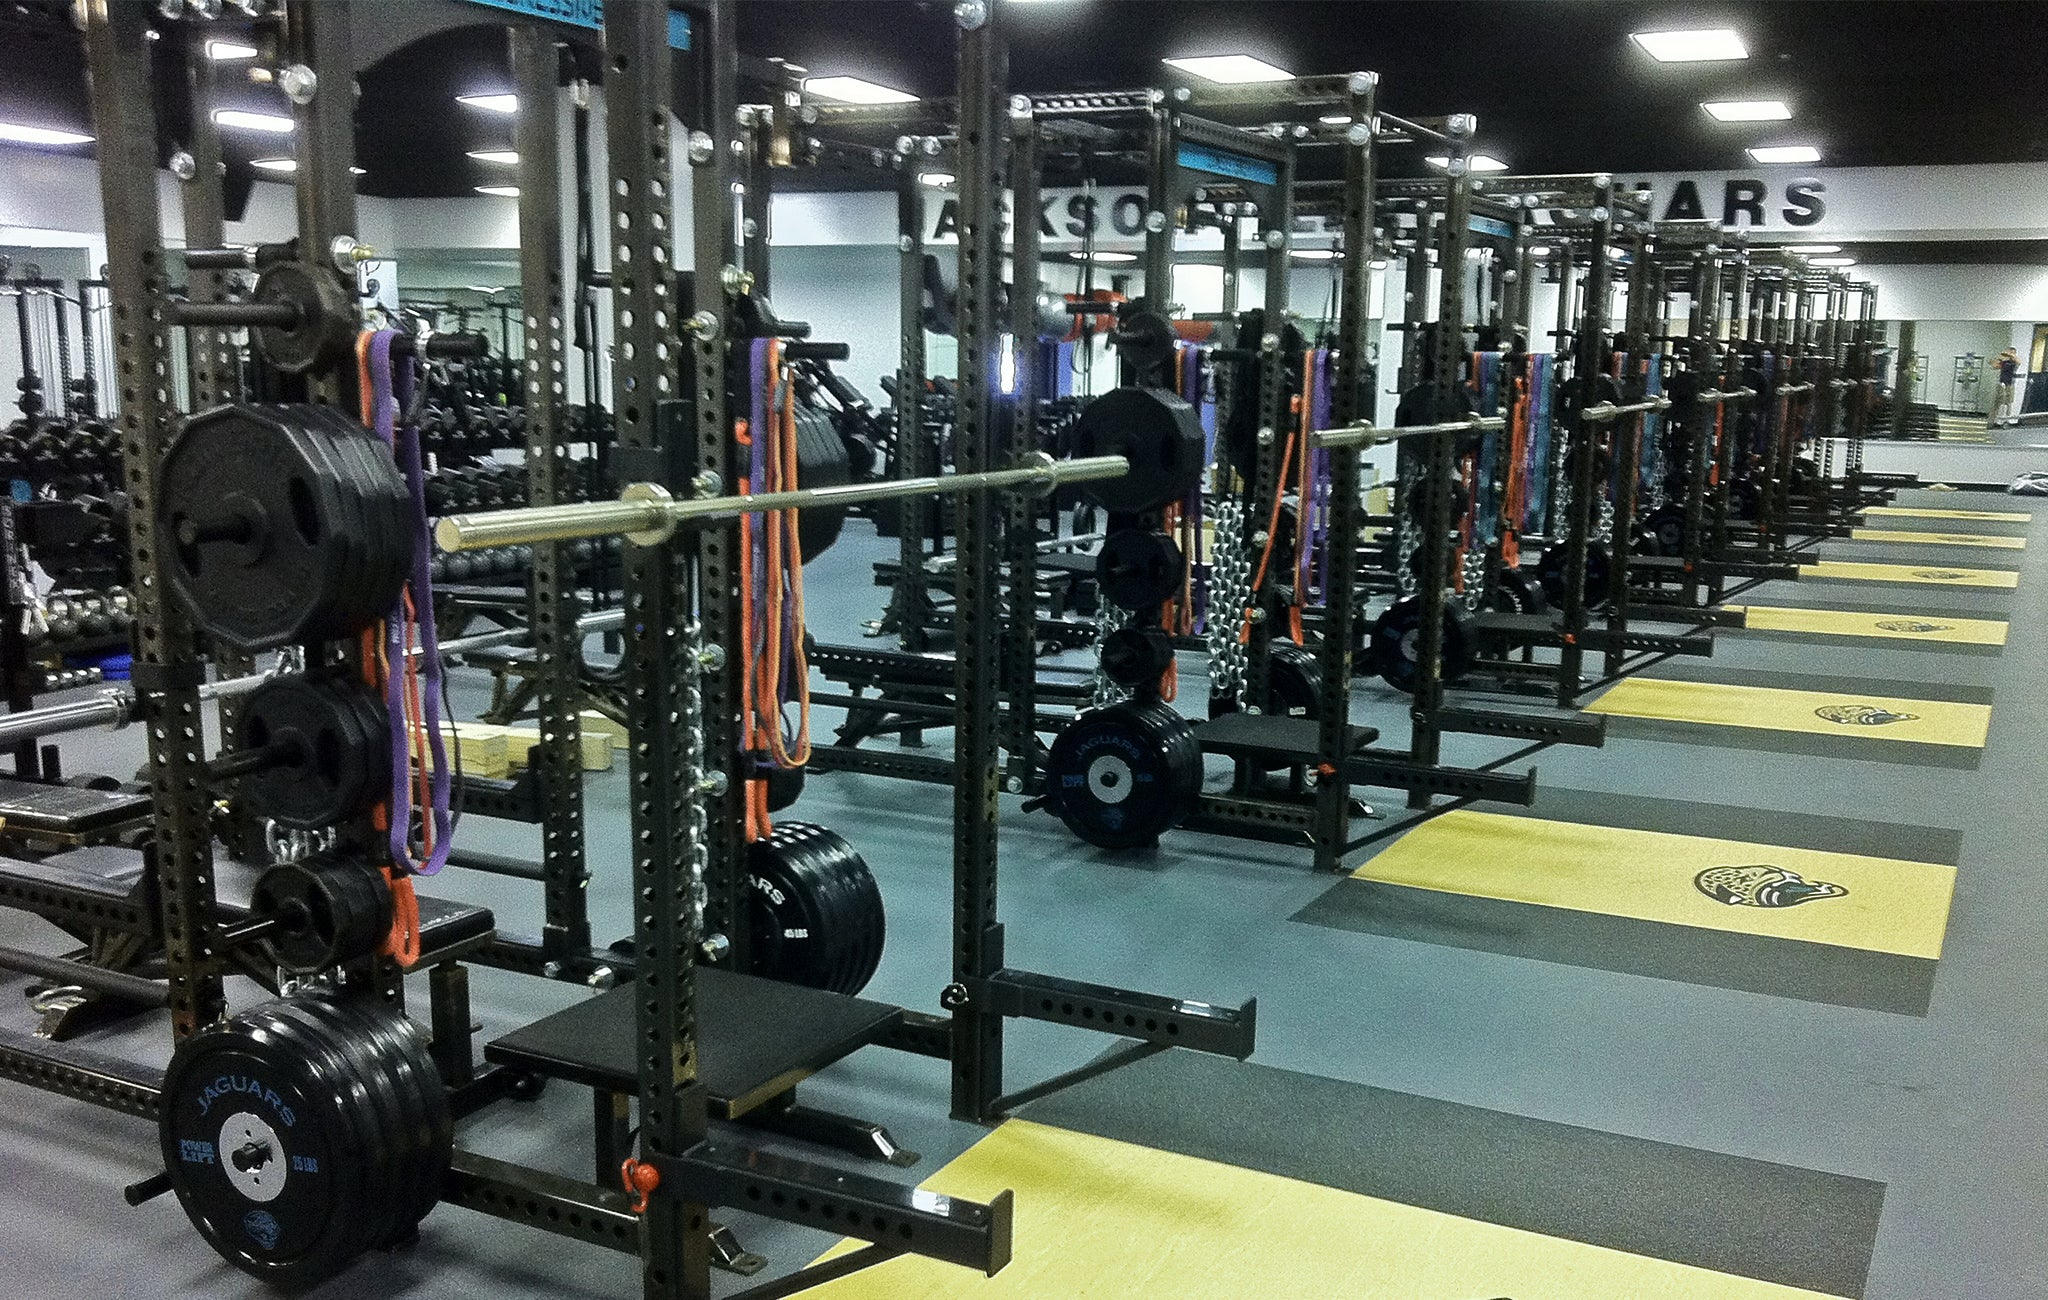 Jacksonville Jaguars weight rooms